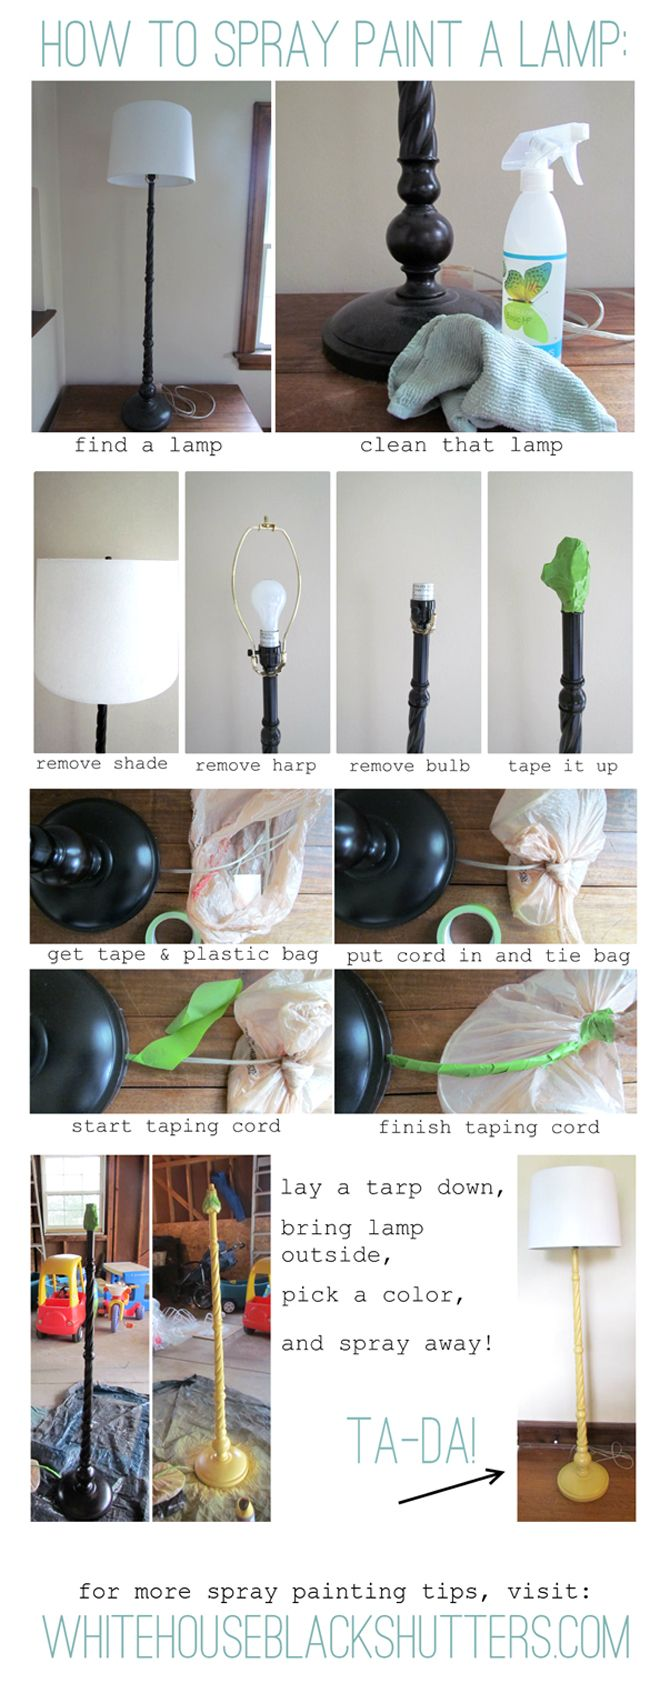 20 spray paint lamps ideas on pinterest paint lamps spray painting. Black Bedroom Furniture Sets. Home Design Ideas